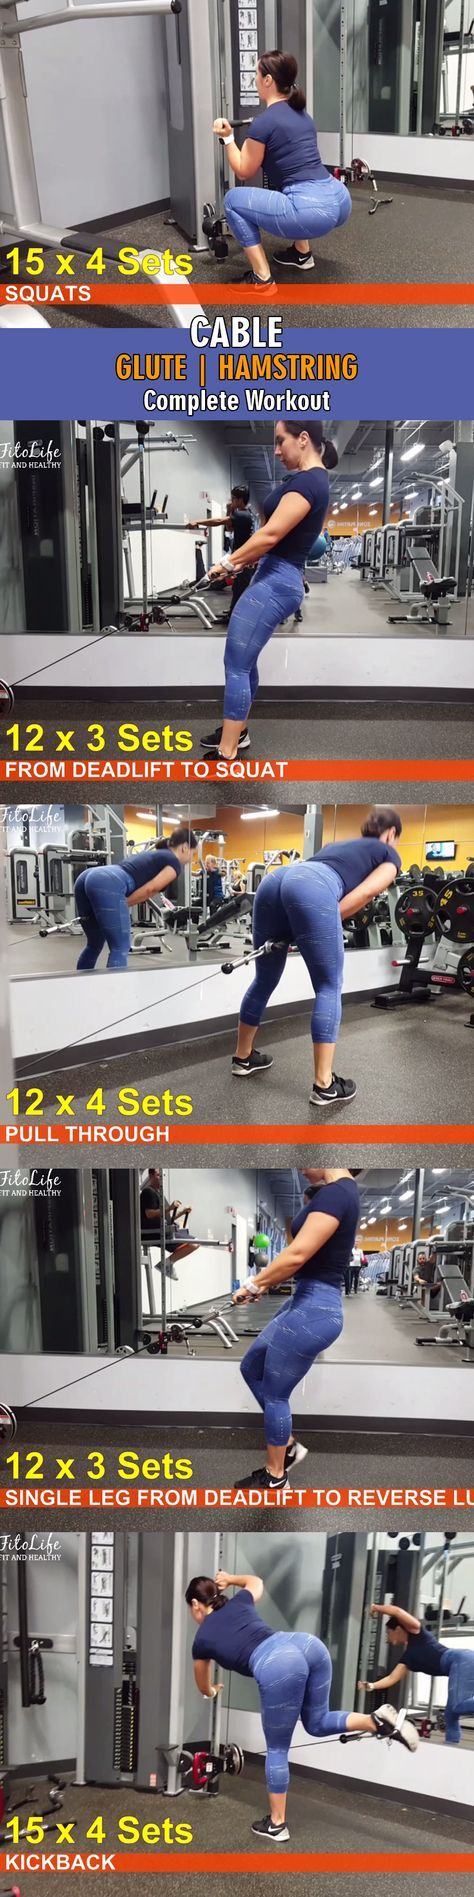 Complete Glute and Hamstrings workout for women using Cables only! Click on the image to check out the video. #gluteworkout #glutetraining #glues #bootybuilding #glutebuilding